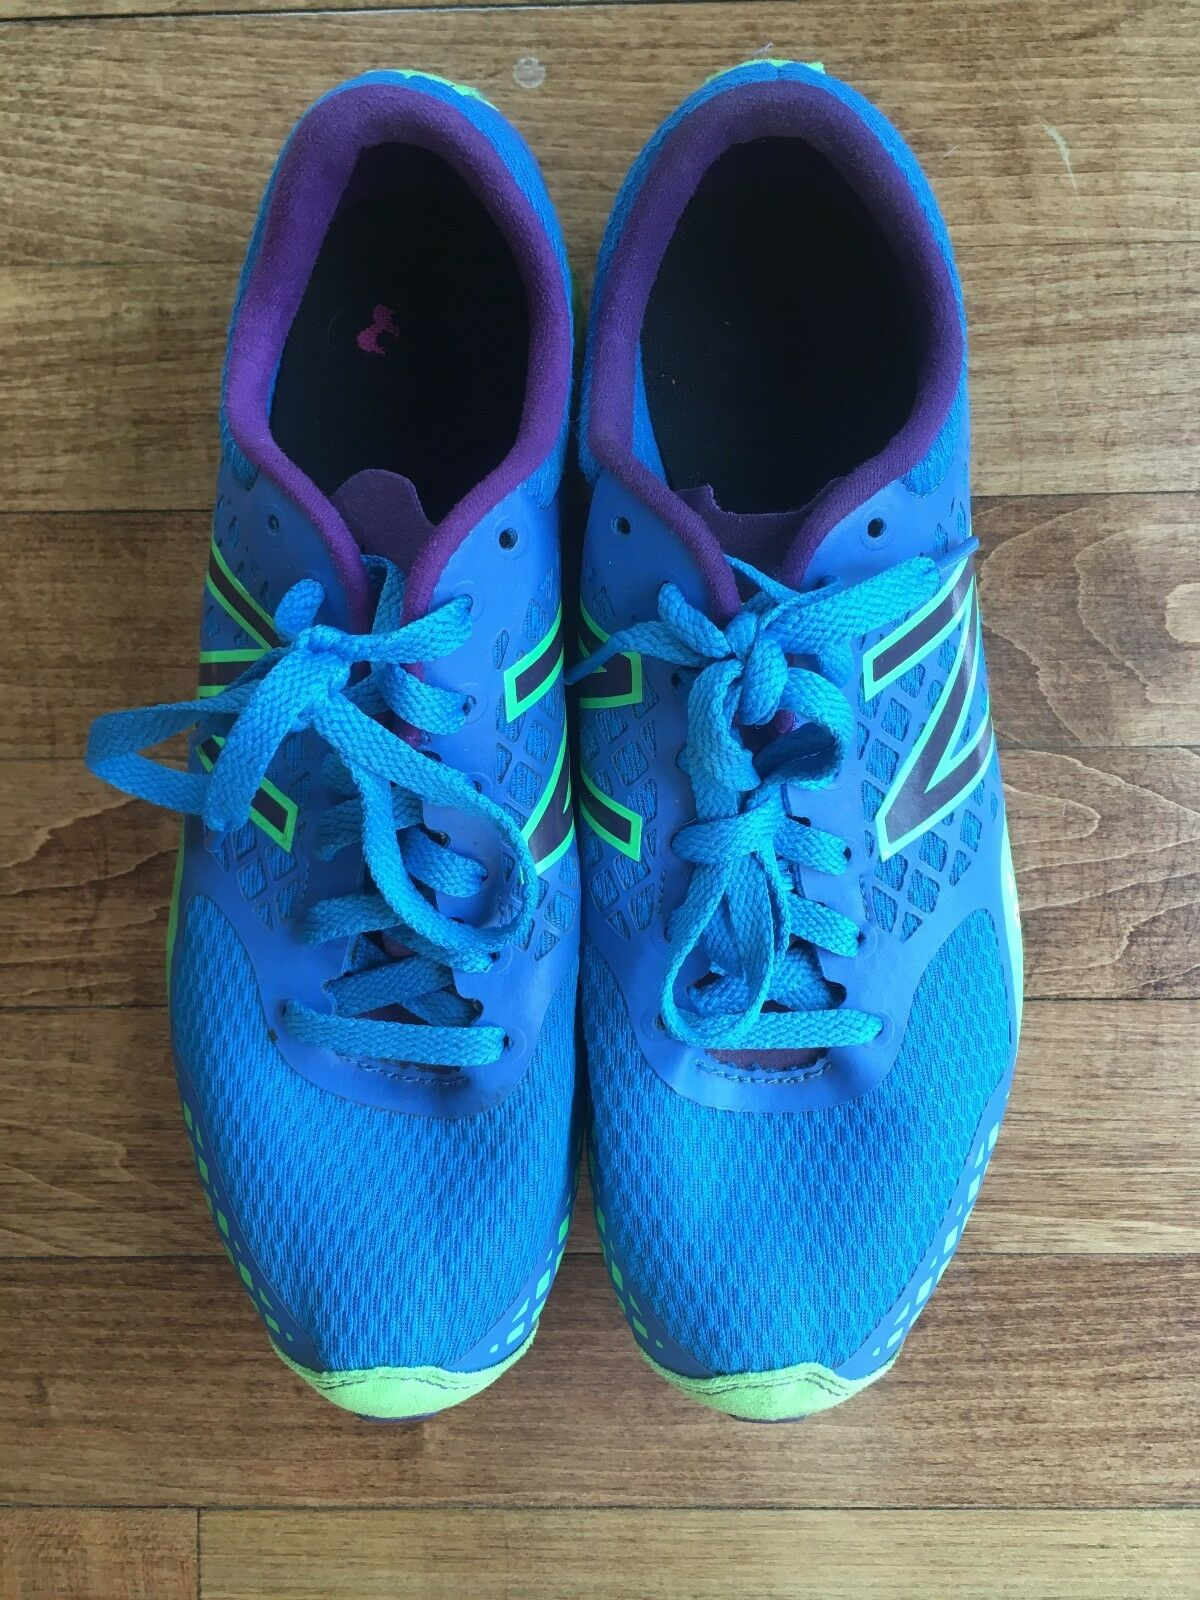 Women's New Balance XC 900 Cross Country Spikes Size 8 Blue and Green